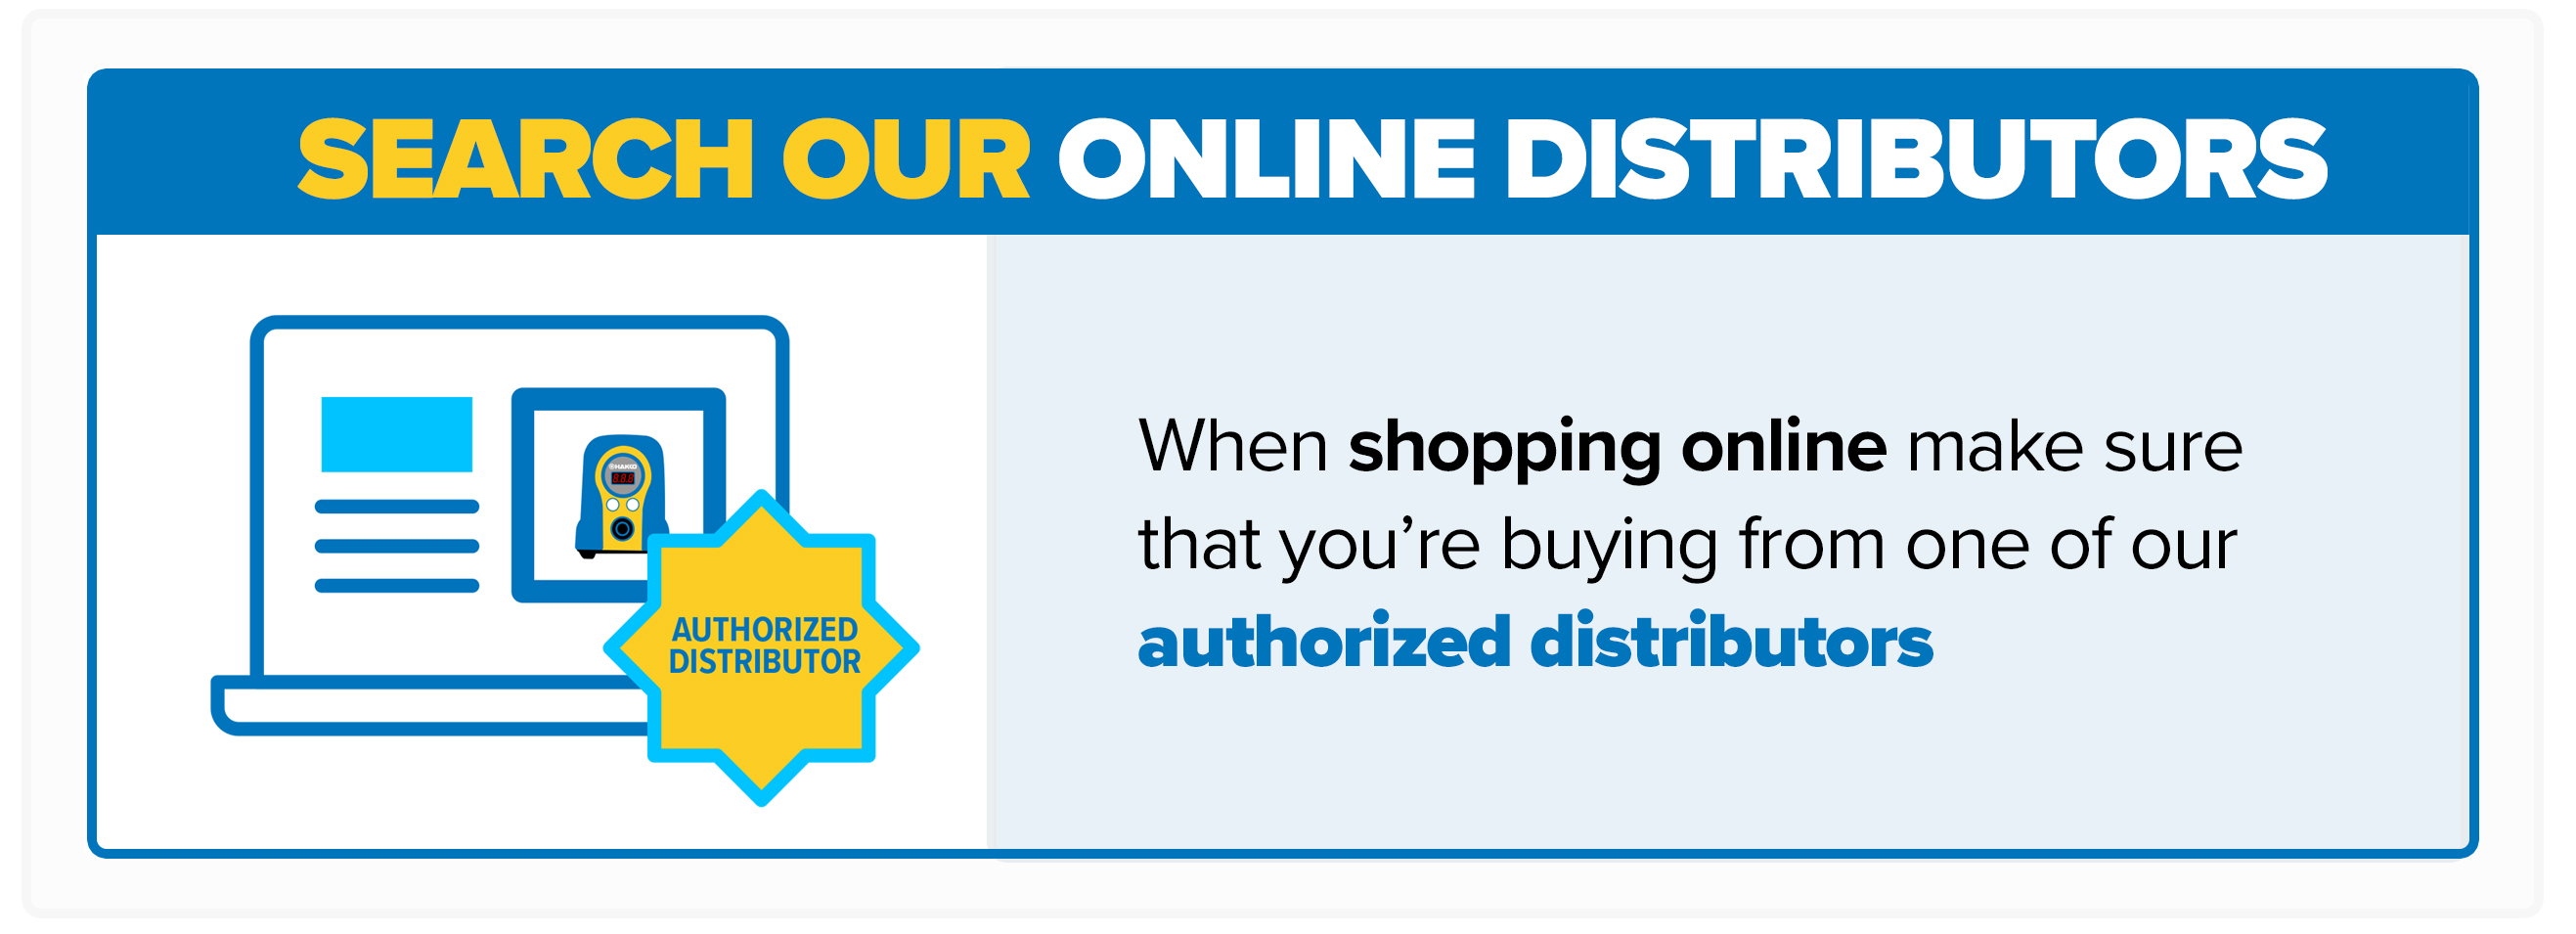 Search Our Online Distributors